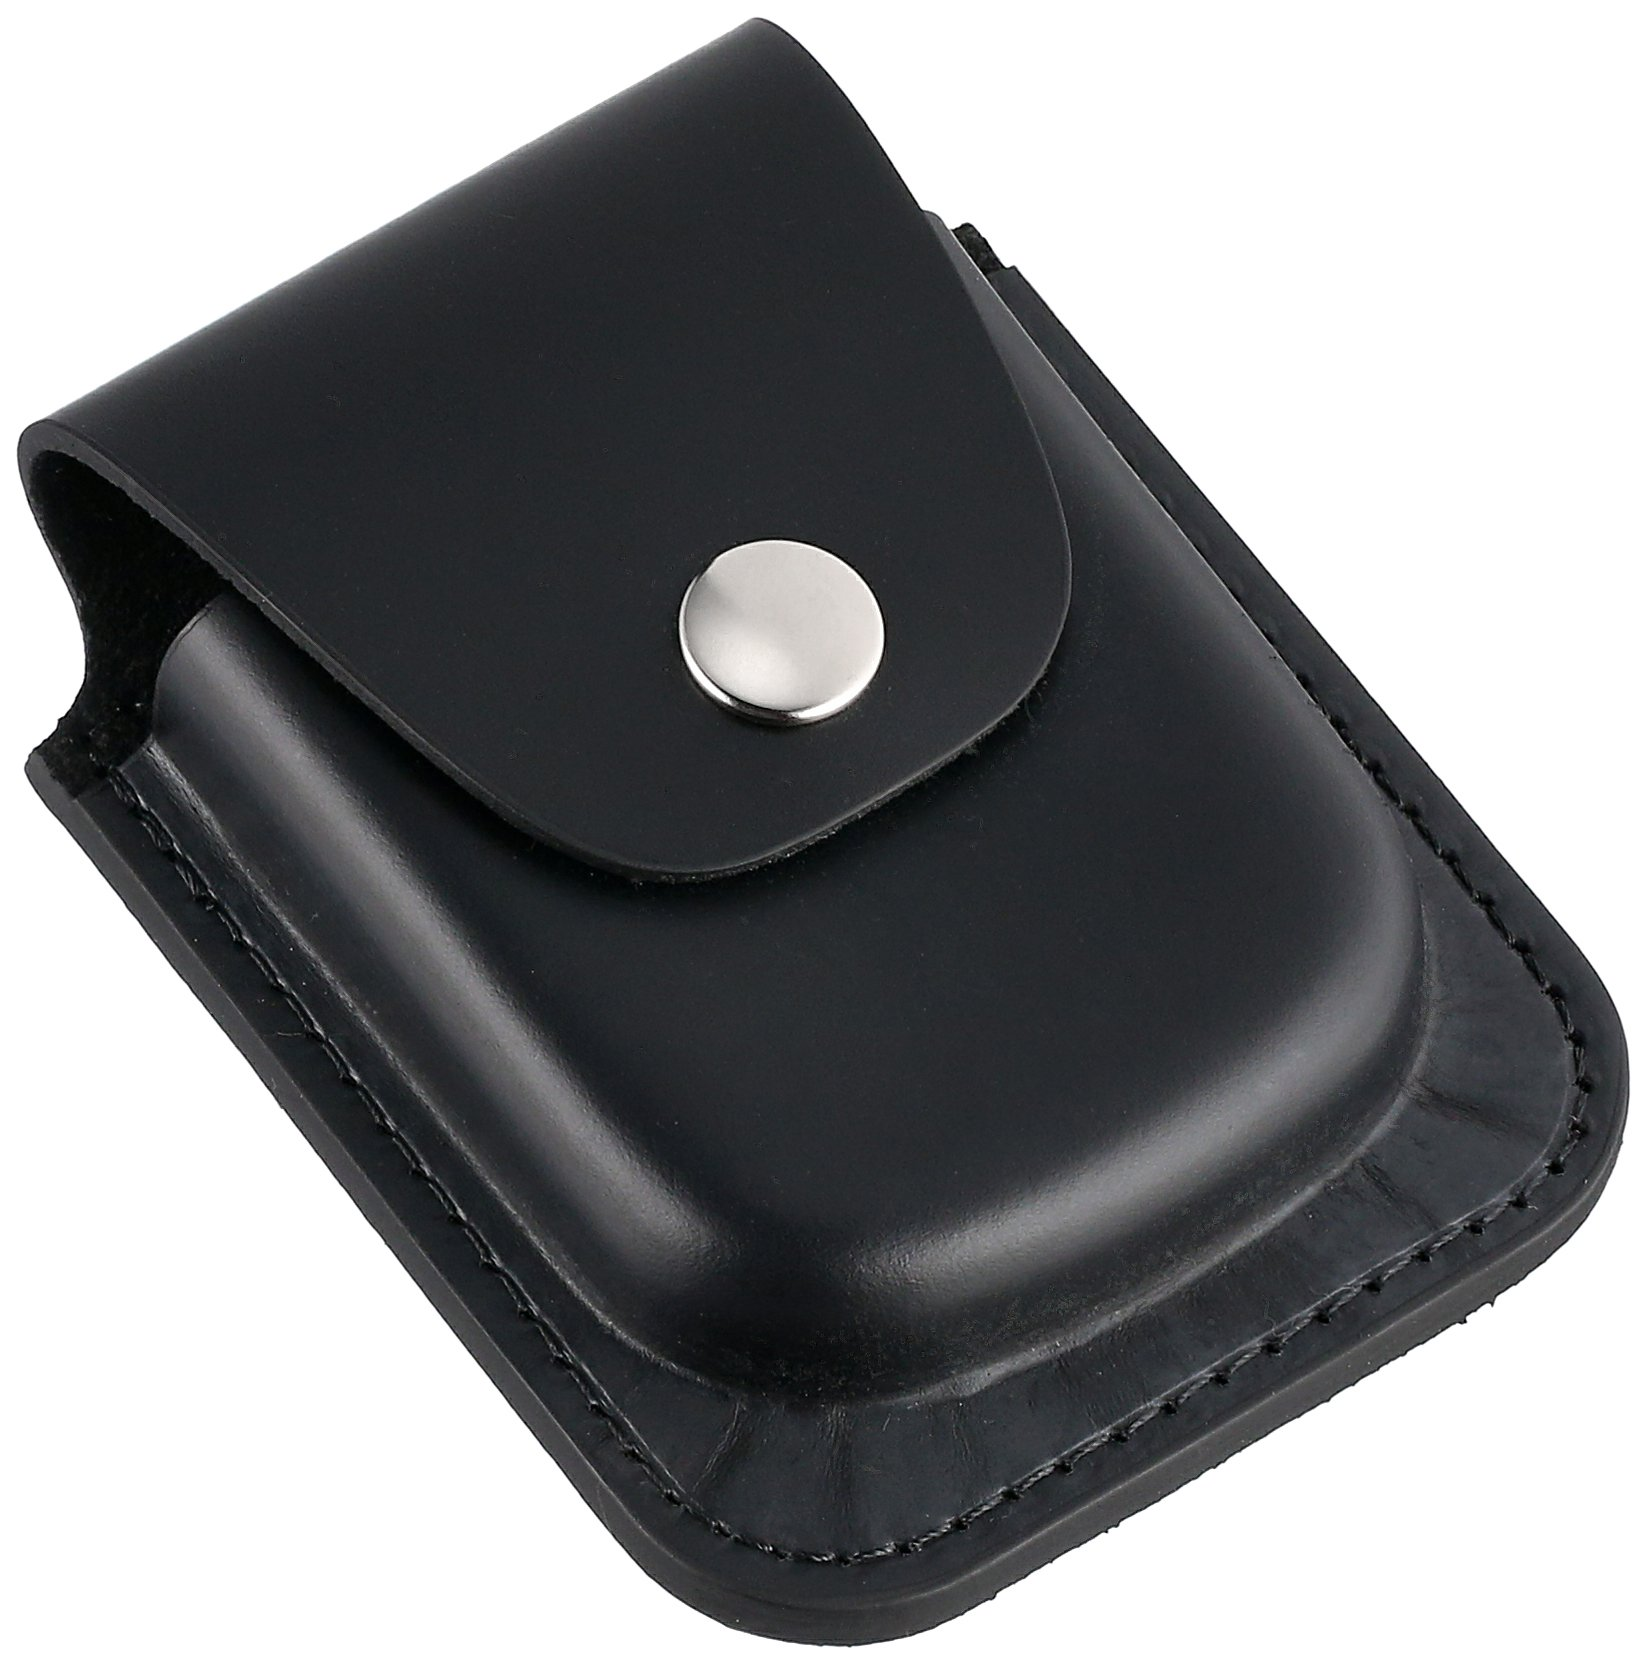 Charles-Hubert, Paris 3572-6 Black Leather 56mm Pocket Watch Holder